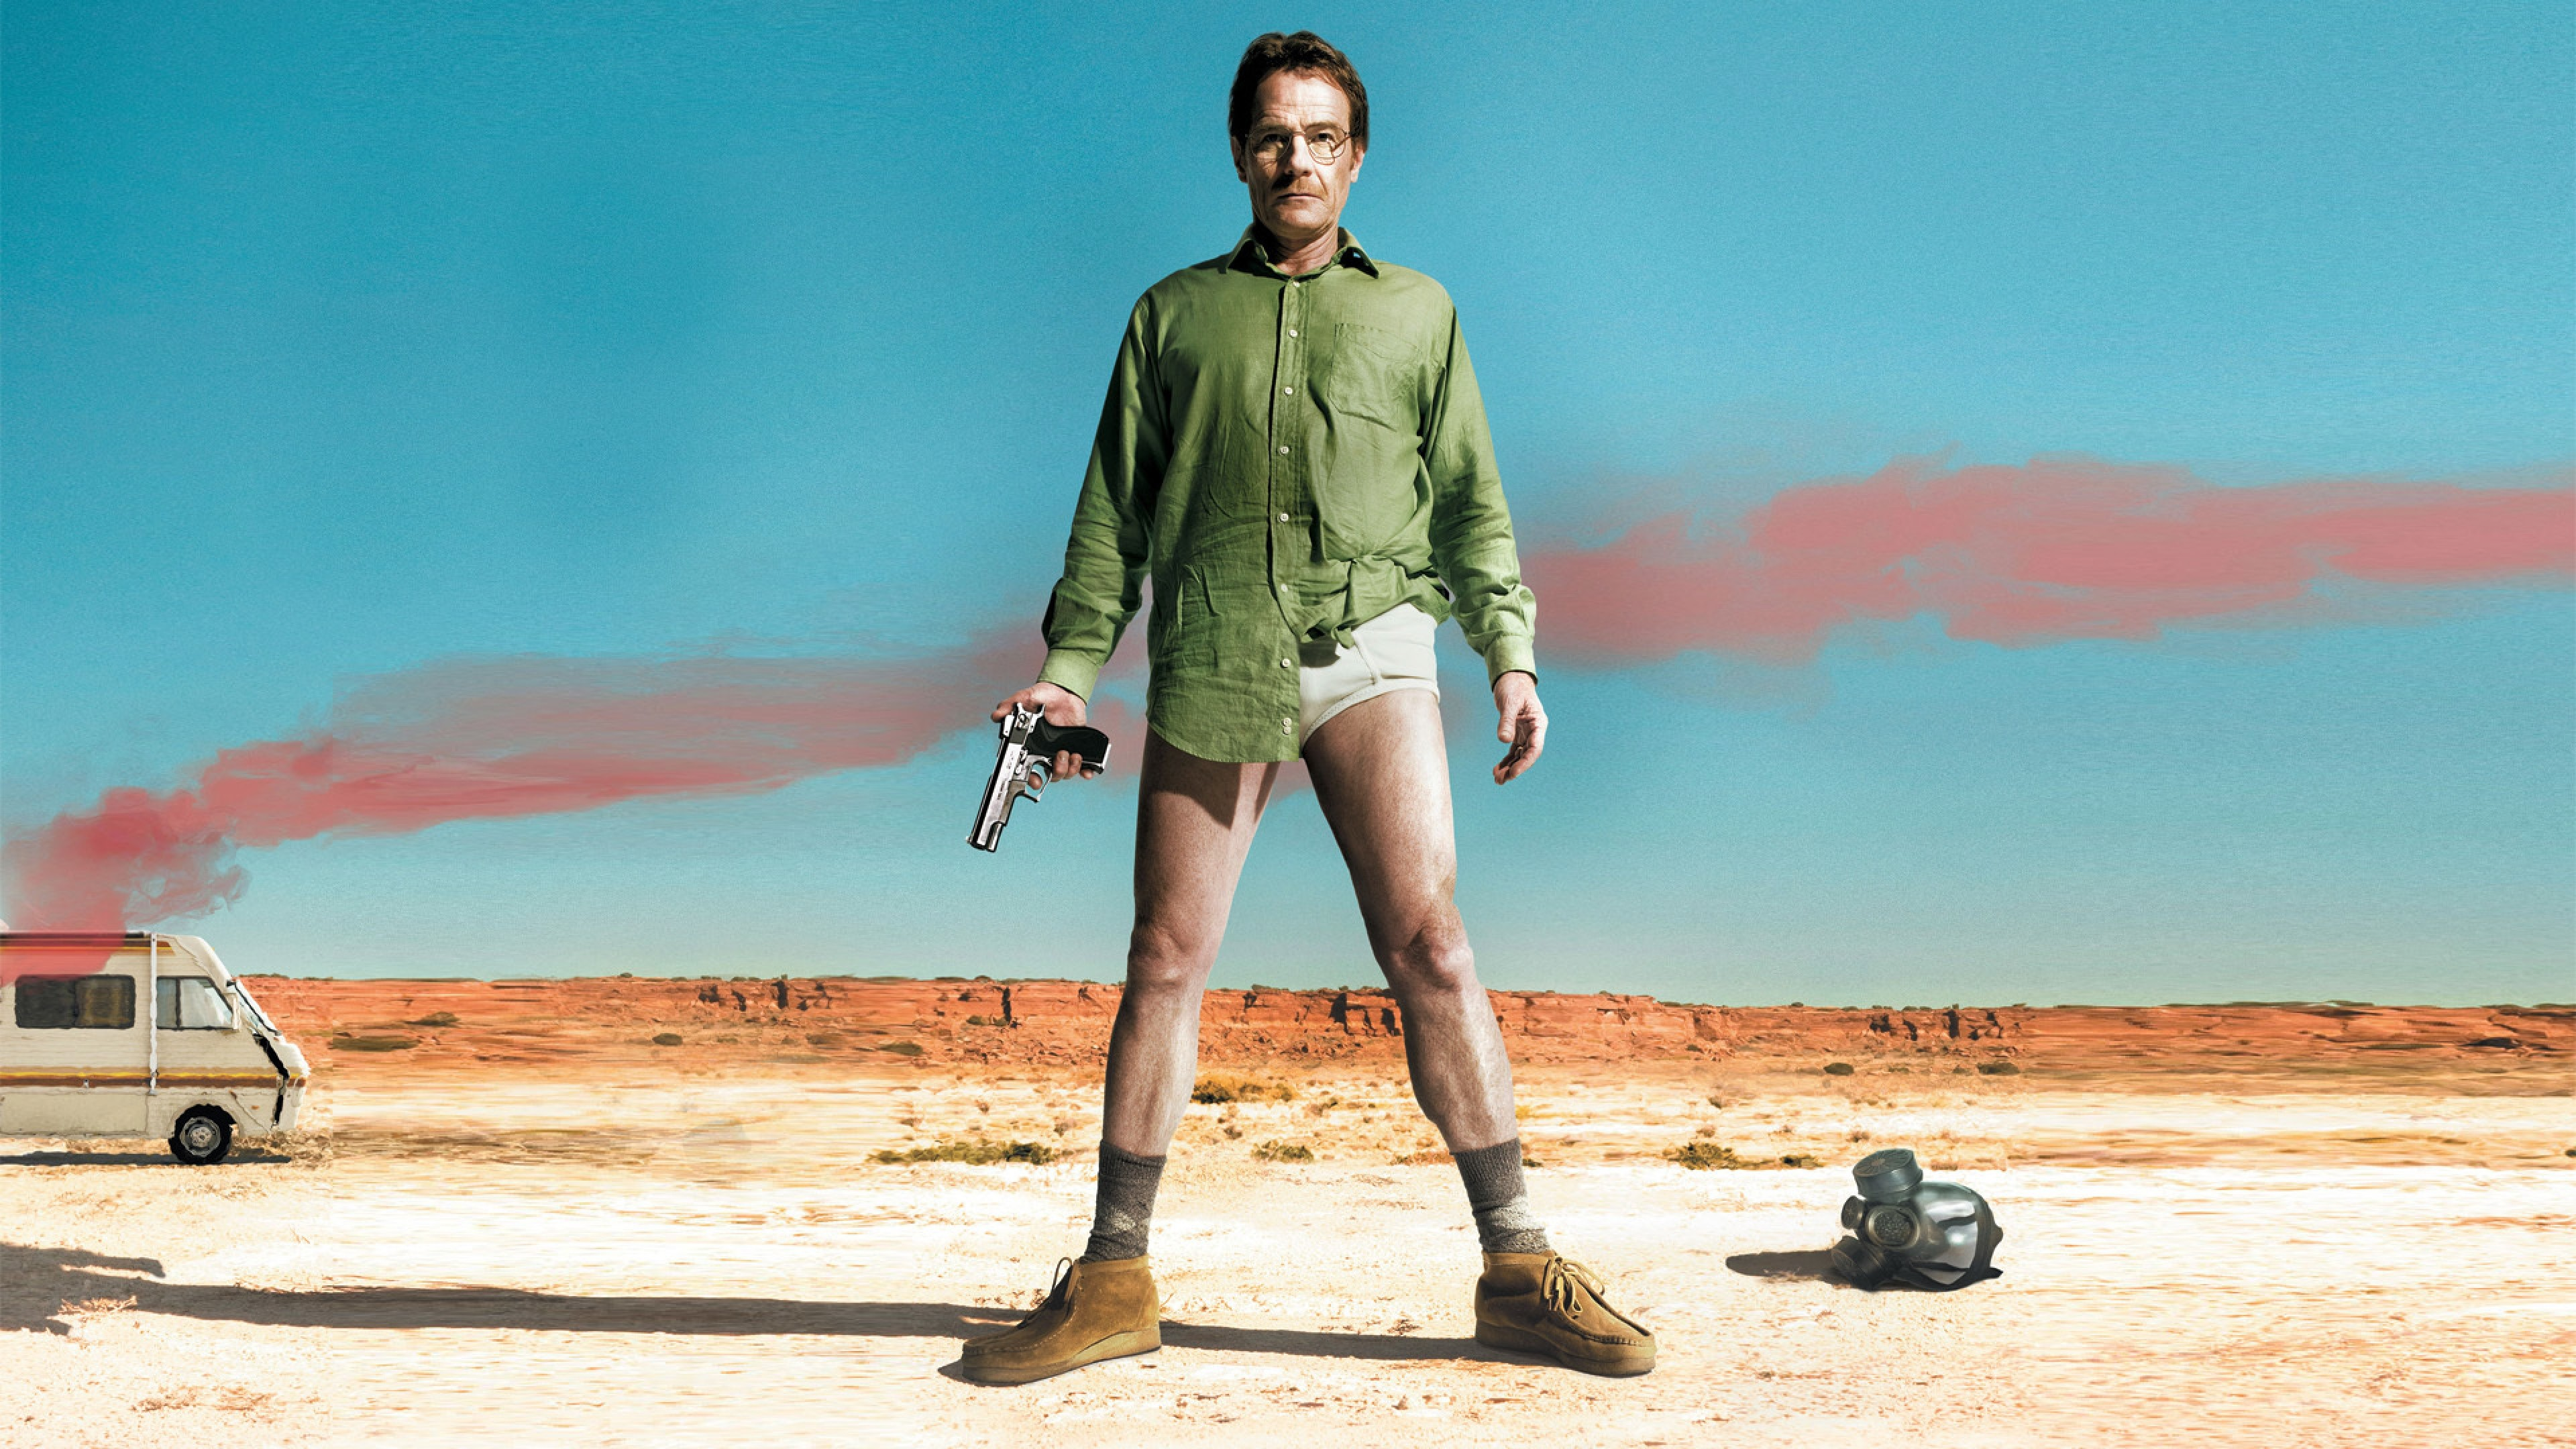 3840x2160 Preview wallpaper breaking bad, series, walter, shirt, pants, gun, situation